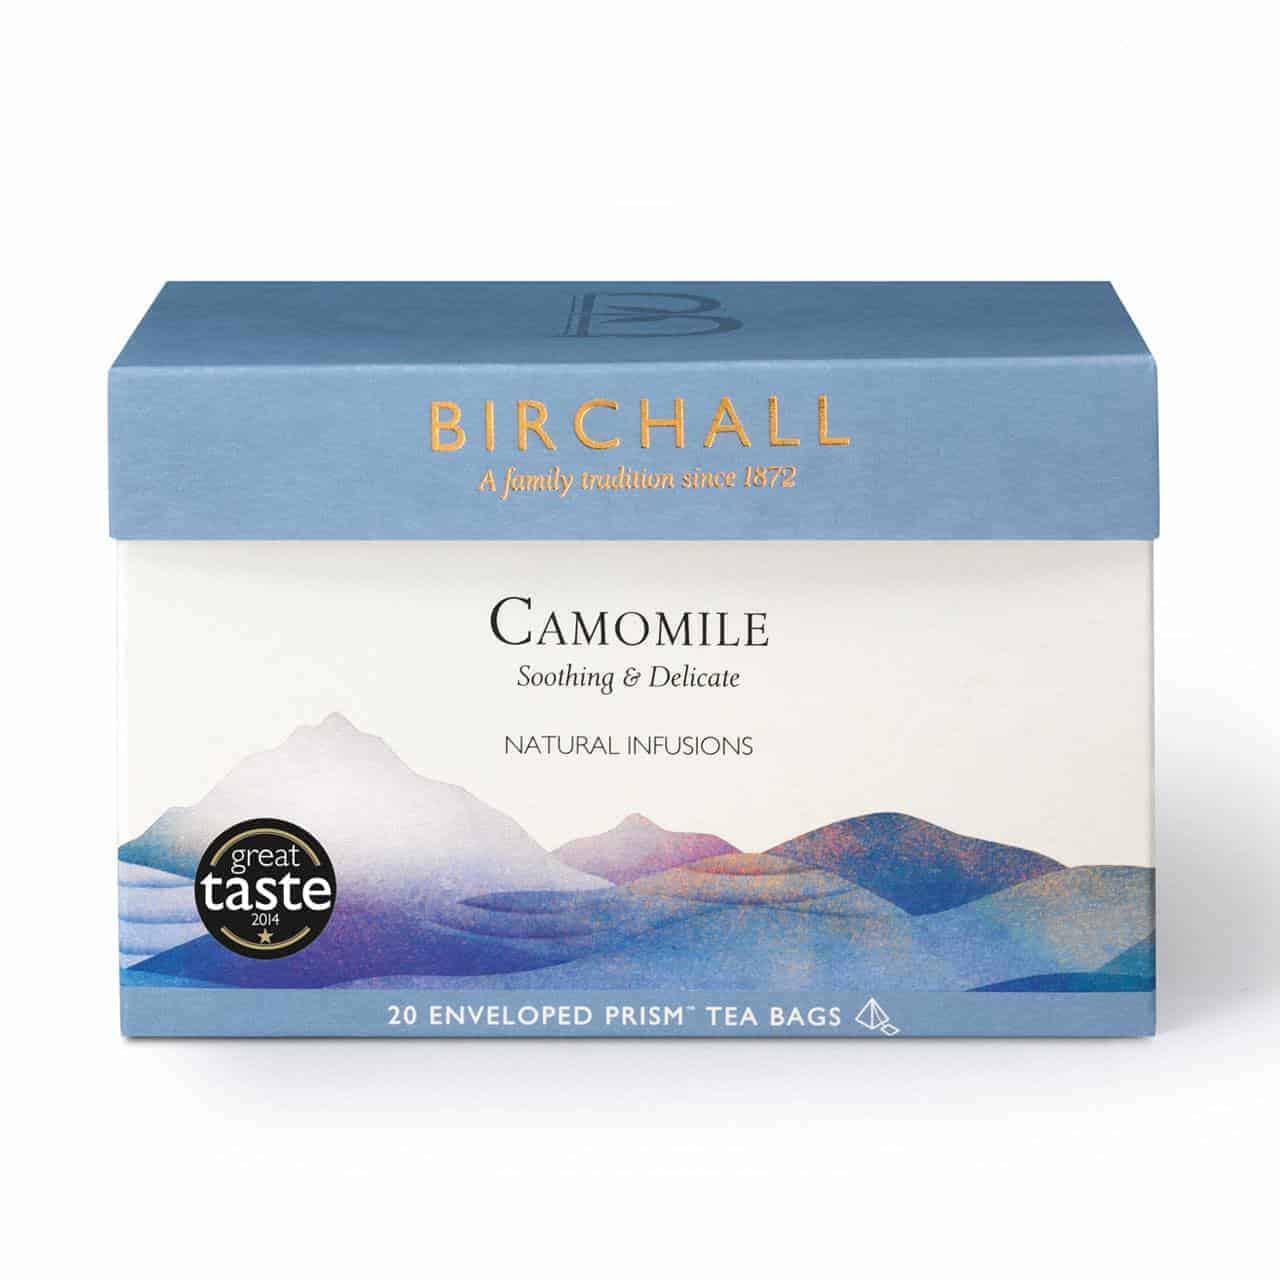 Birchall Camomile - 20 Enveloped Prism Tea Bags